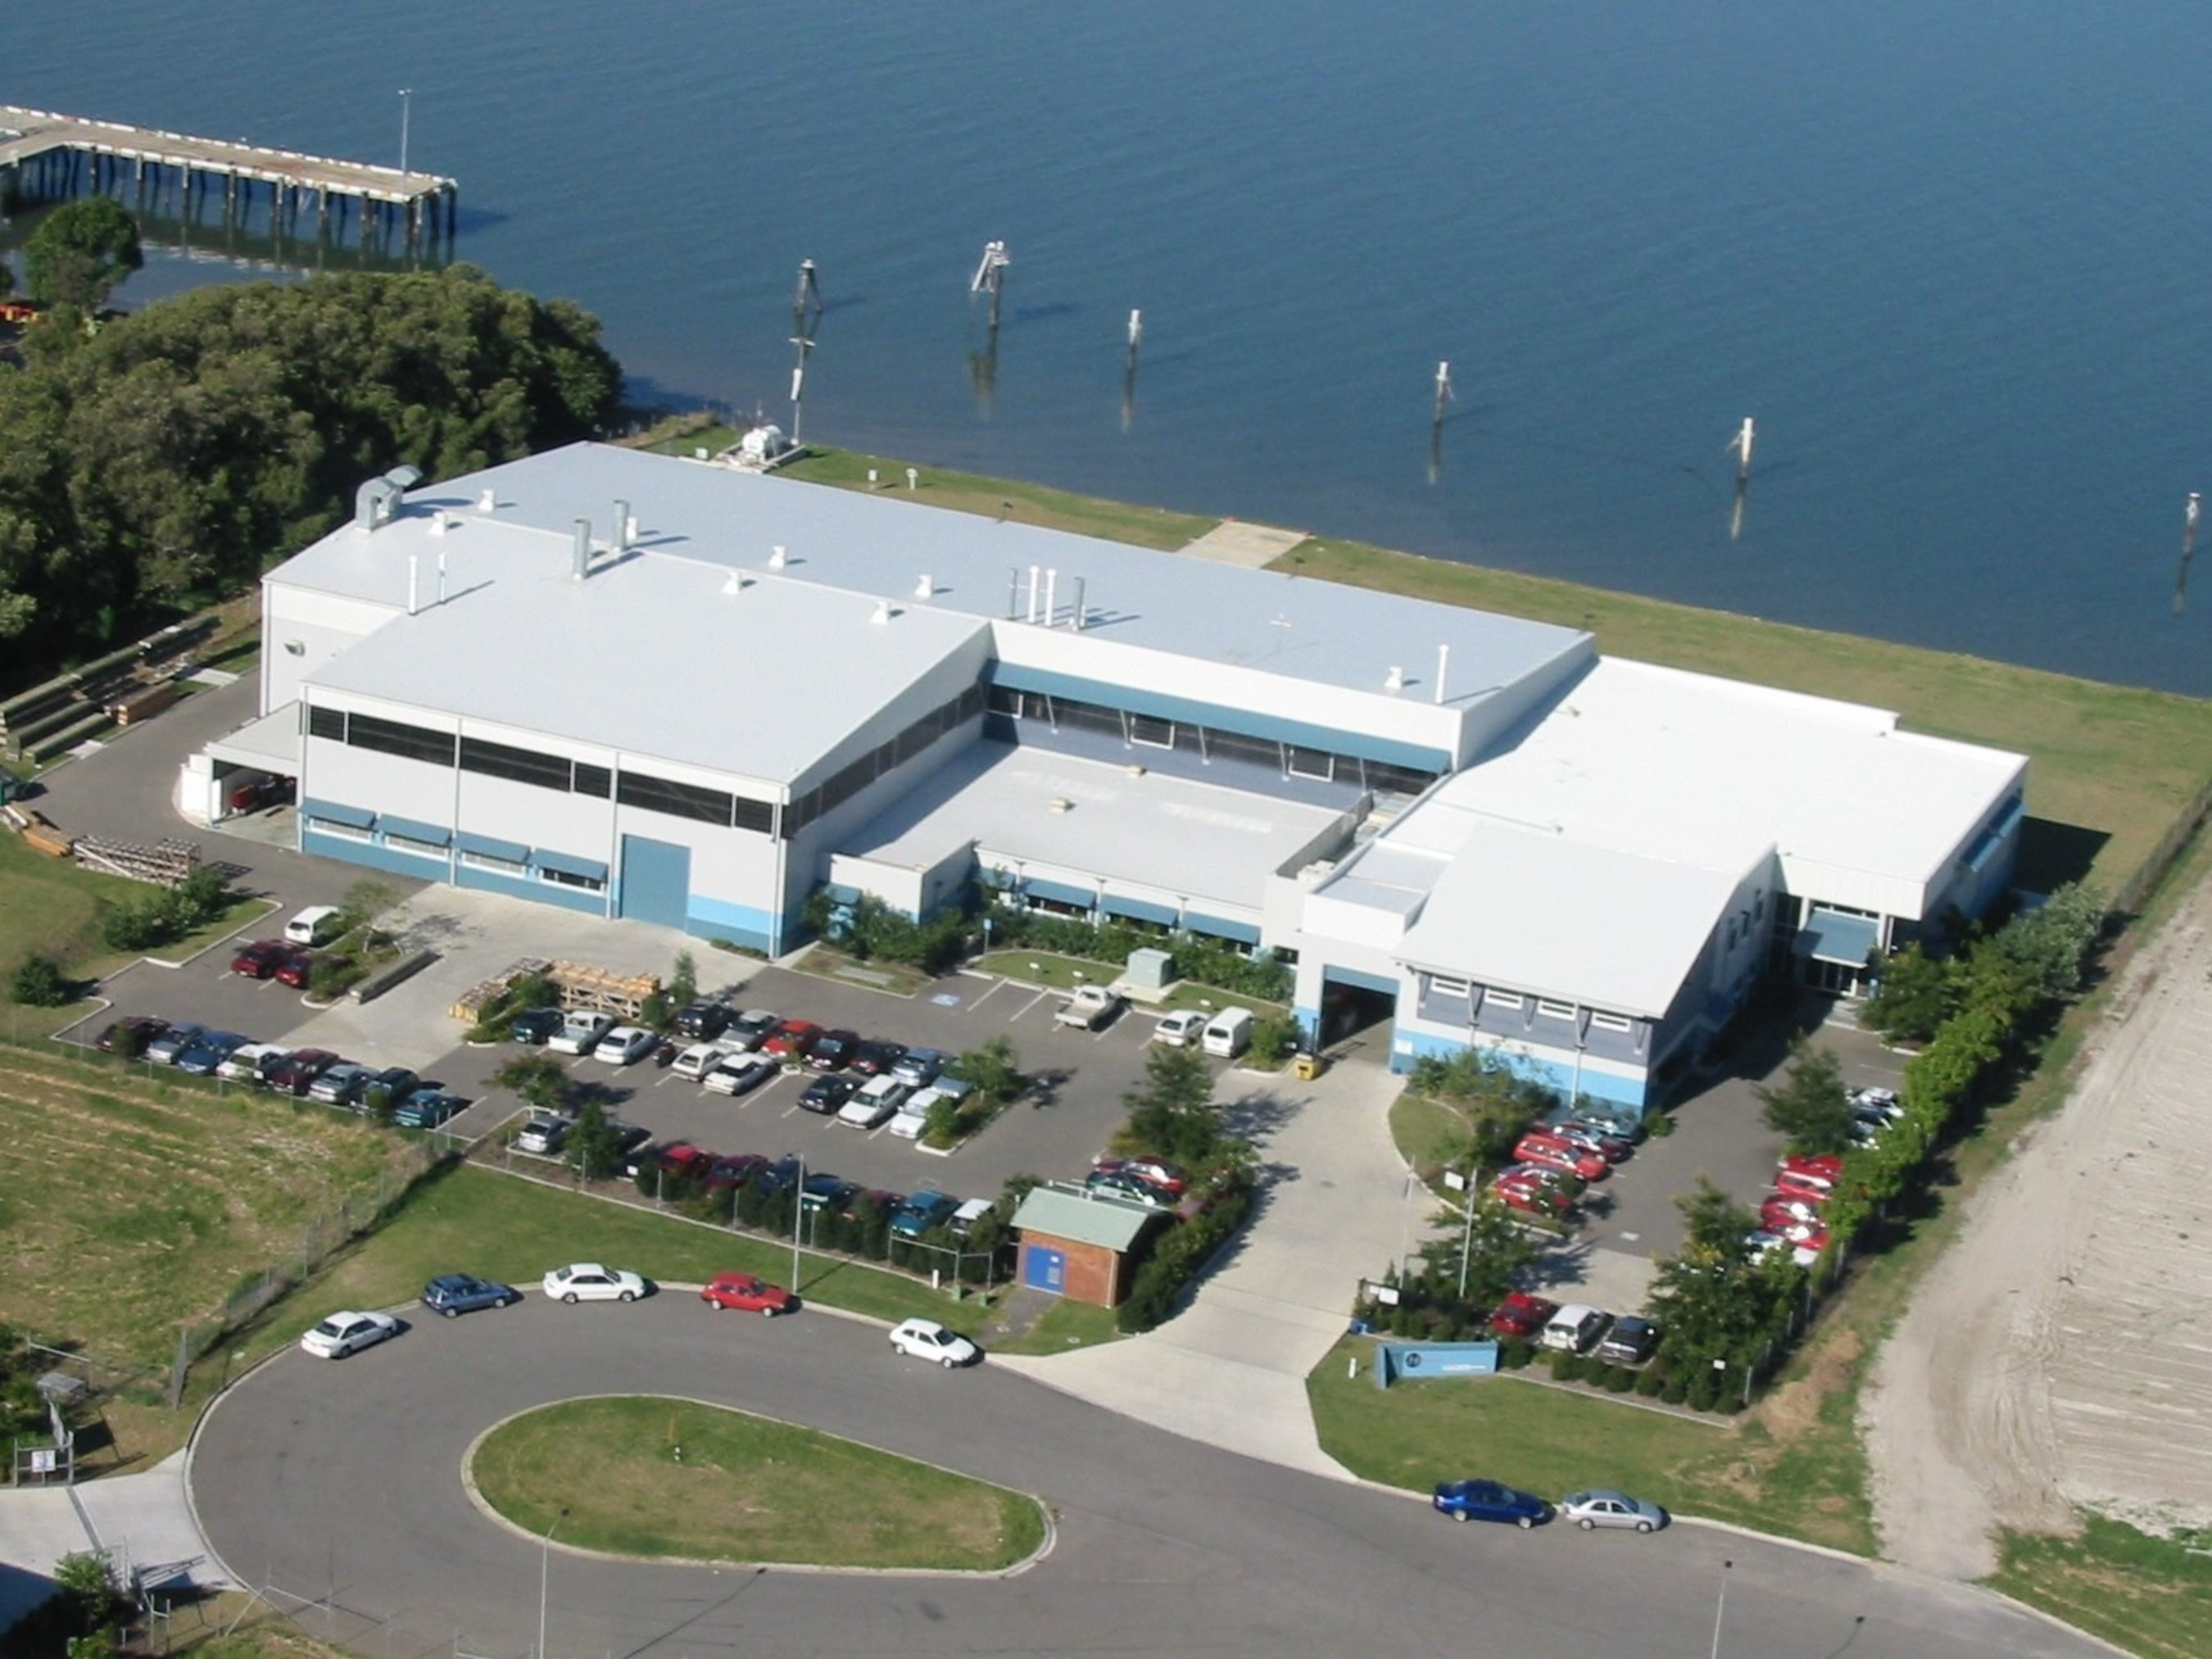 Sikorsky has opened an expandable 3,500-square-foot Forward Stocking Location in Brisbane, Australia, at Sikorsky Helitech, a Sikorsky company. The new FSL will support Sikorsky S-92(R) and S-76(R) helicopter fleets. Supplementing this new initiative, Sikorsky Helitech has placed a full- time representative in Perth, Western Australia. For any support enquiries, please call +61 1800 435 483 (1-800 HELITECH)